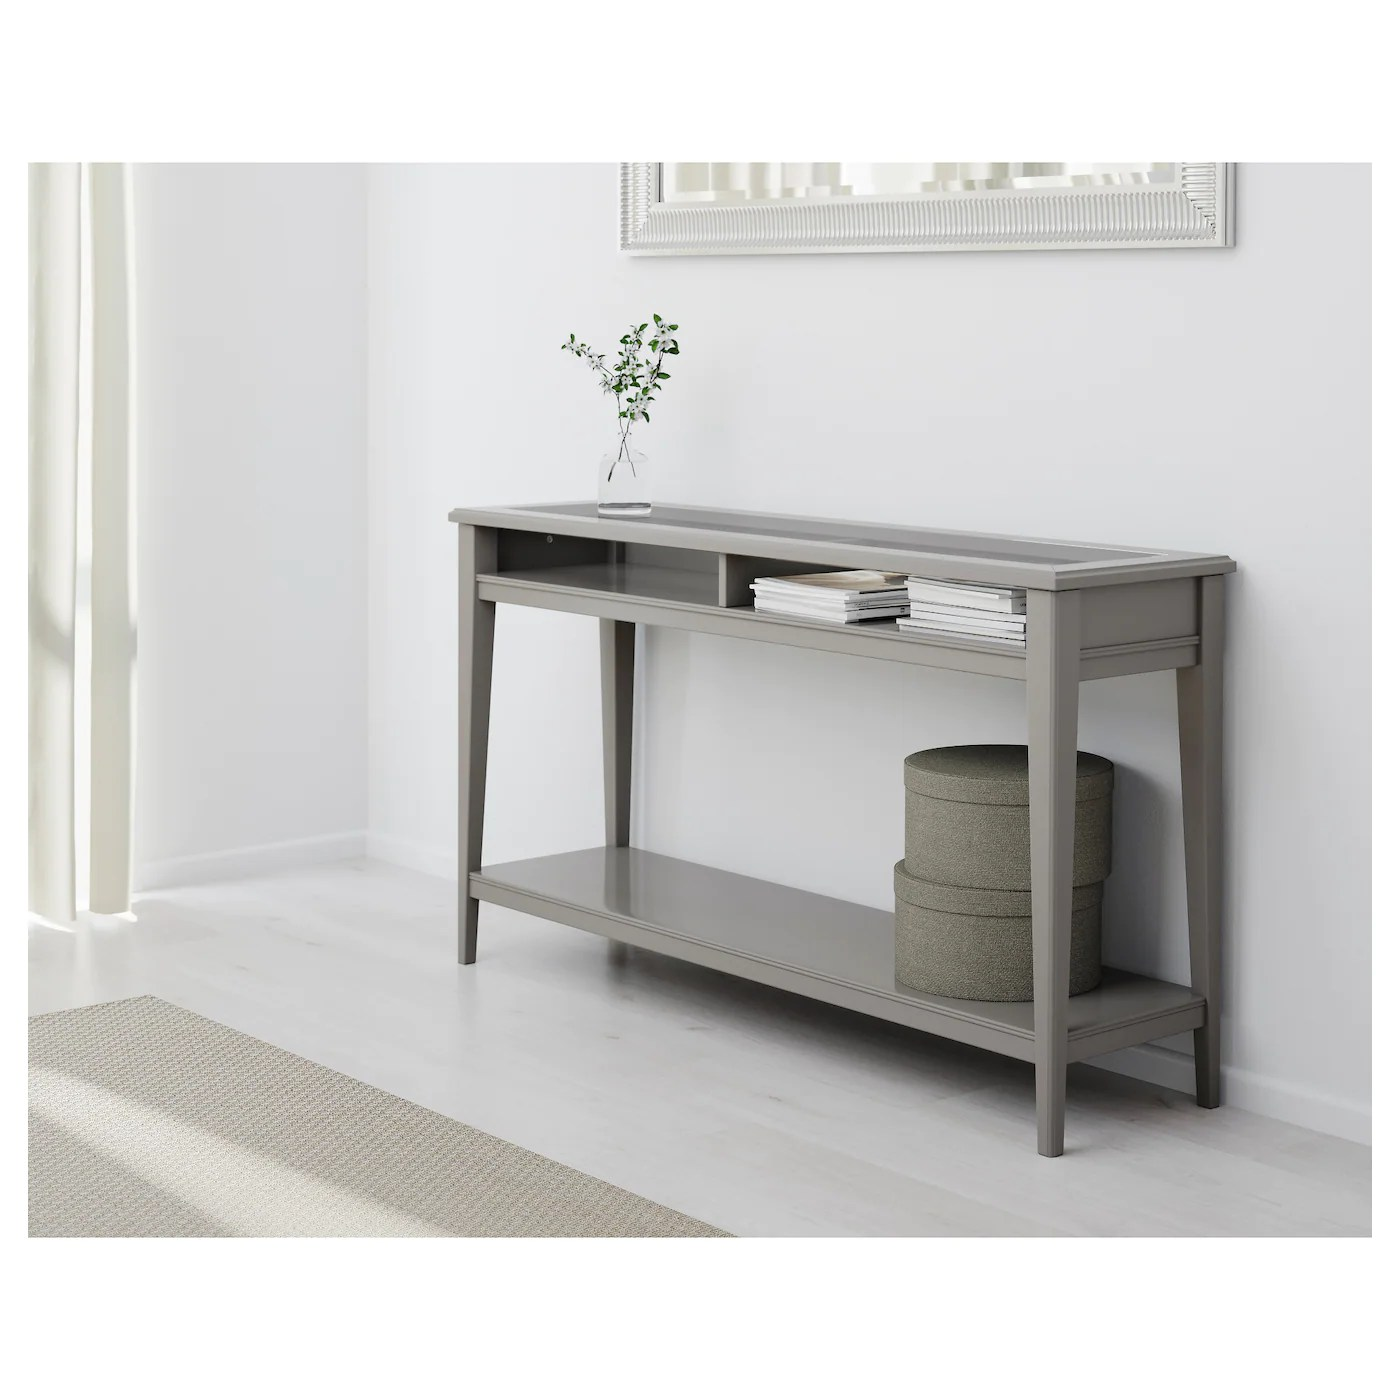 liatorp console table grey glass 133x37 cm